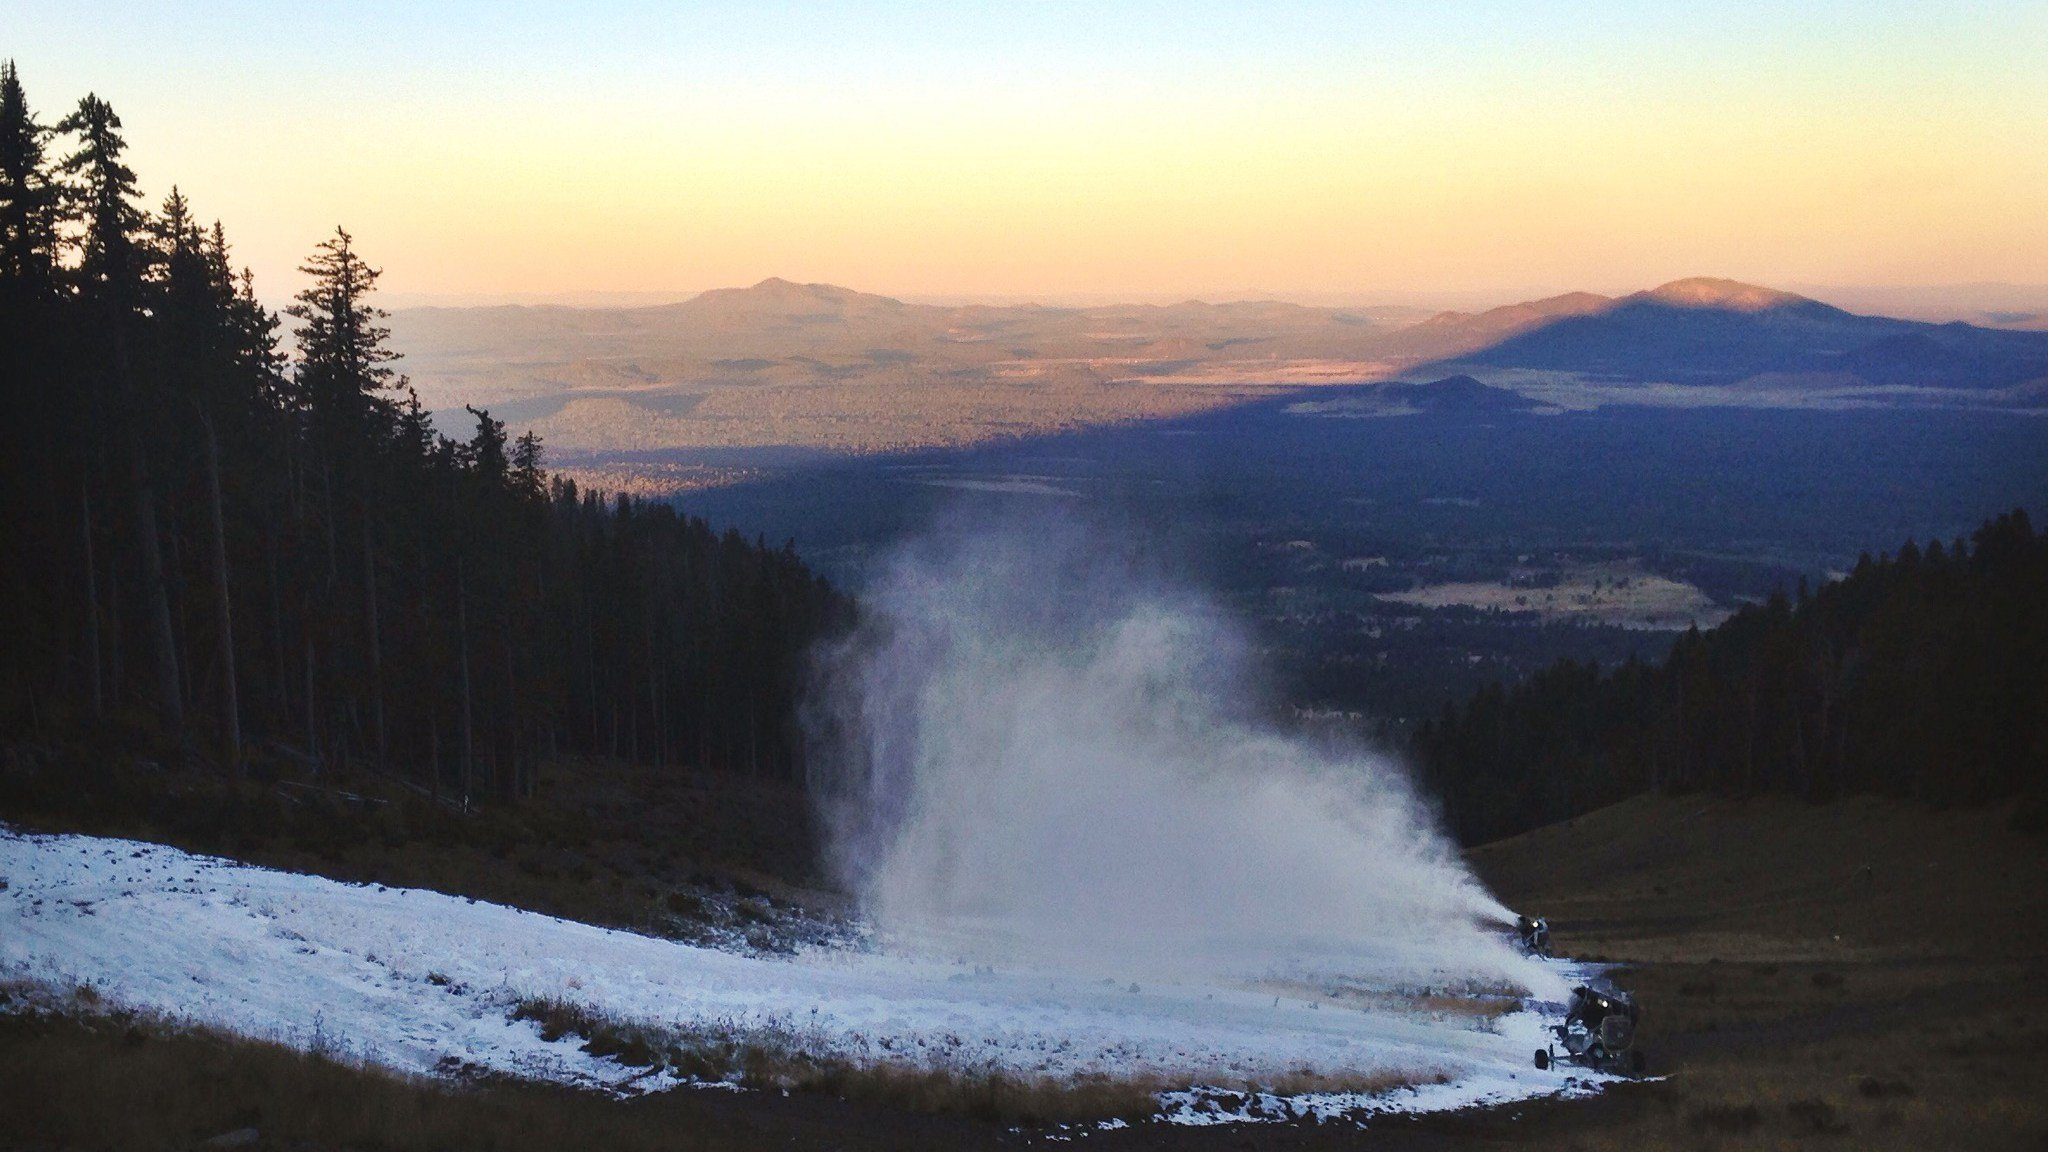 Snowbowl is open Fridays, Saturdays and Sundays for fall operations through mid-October. (Source: Carlos Danel/Arizona Snowbowl)